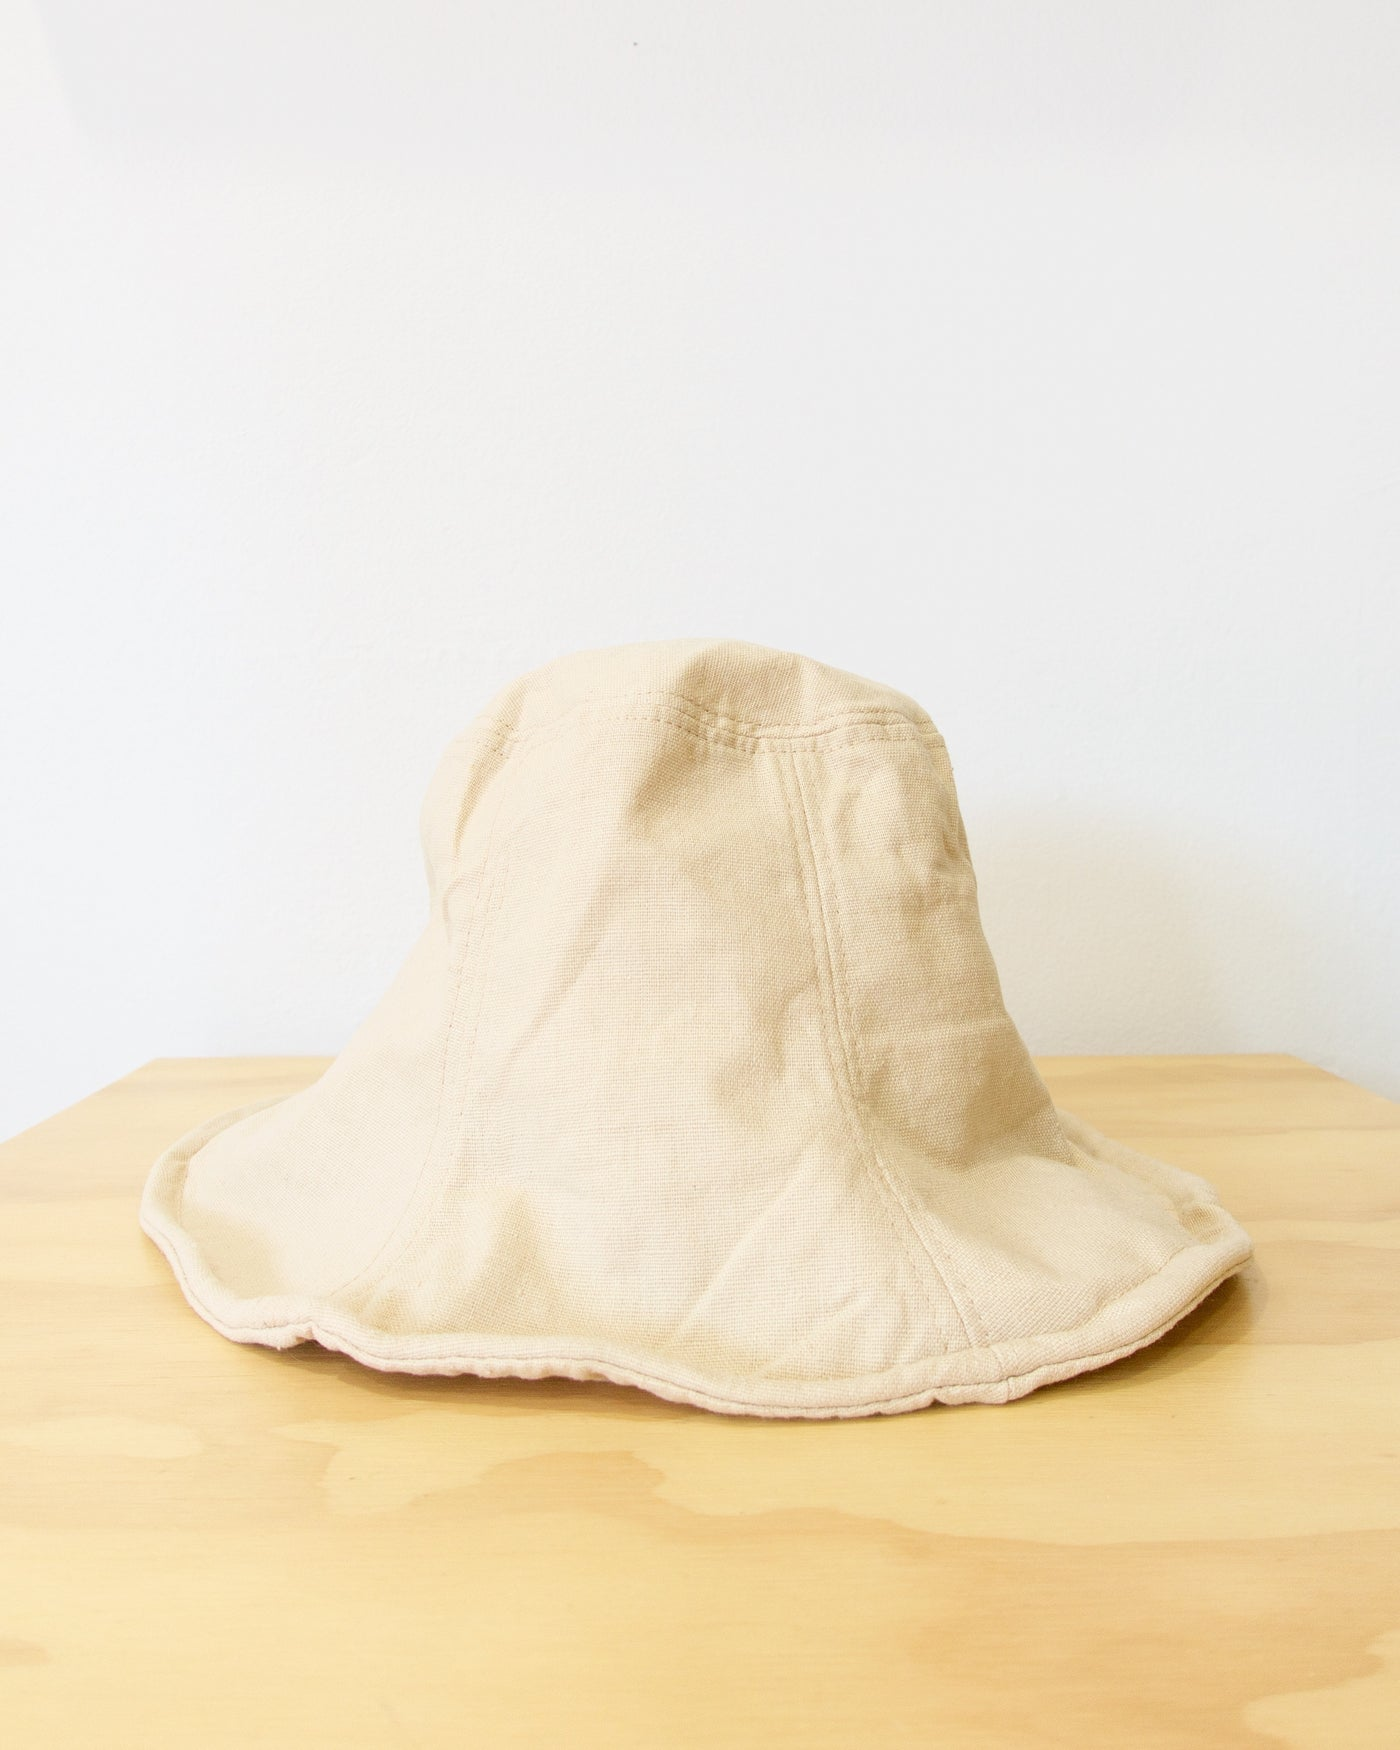 Wellington Factory Everyday Hat Woman in Beige at Heyday Store Adelaide